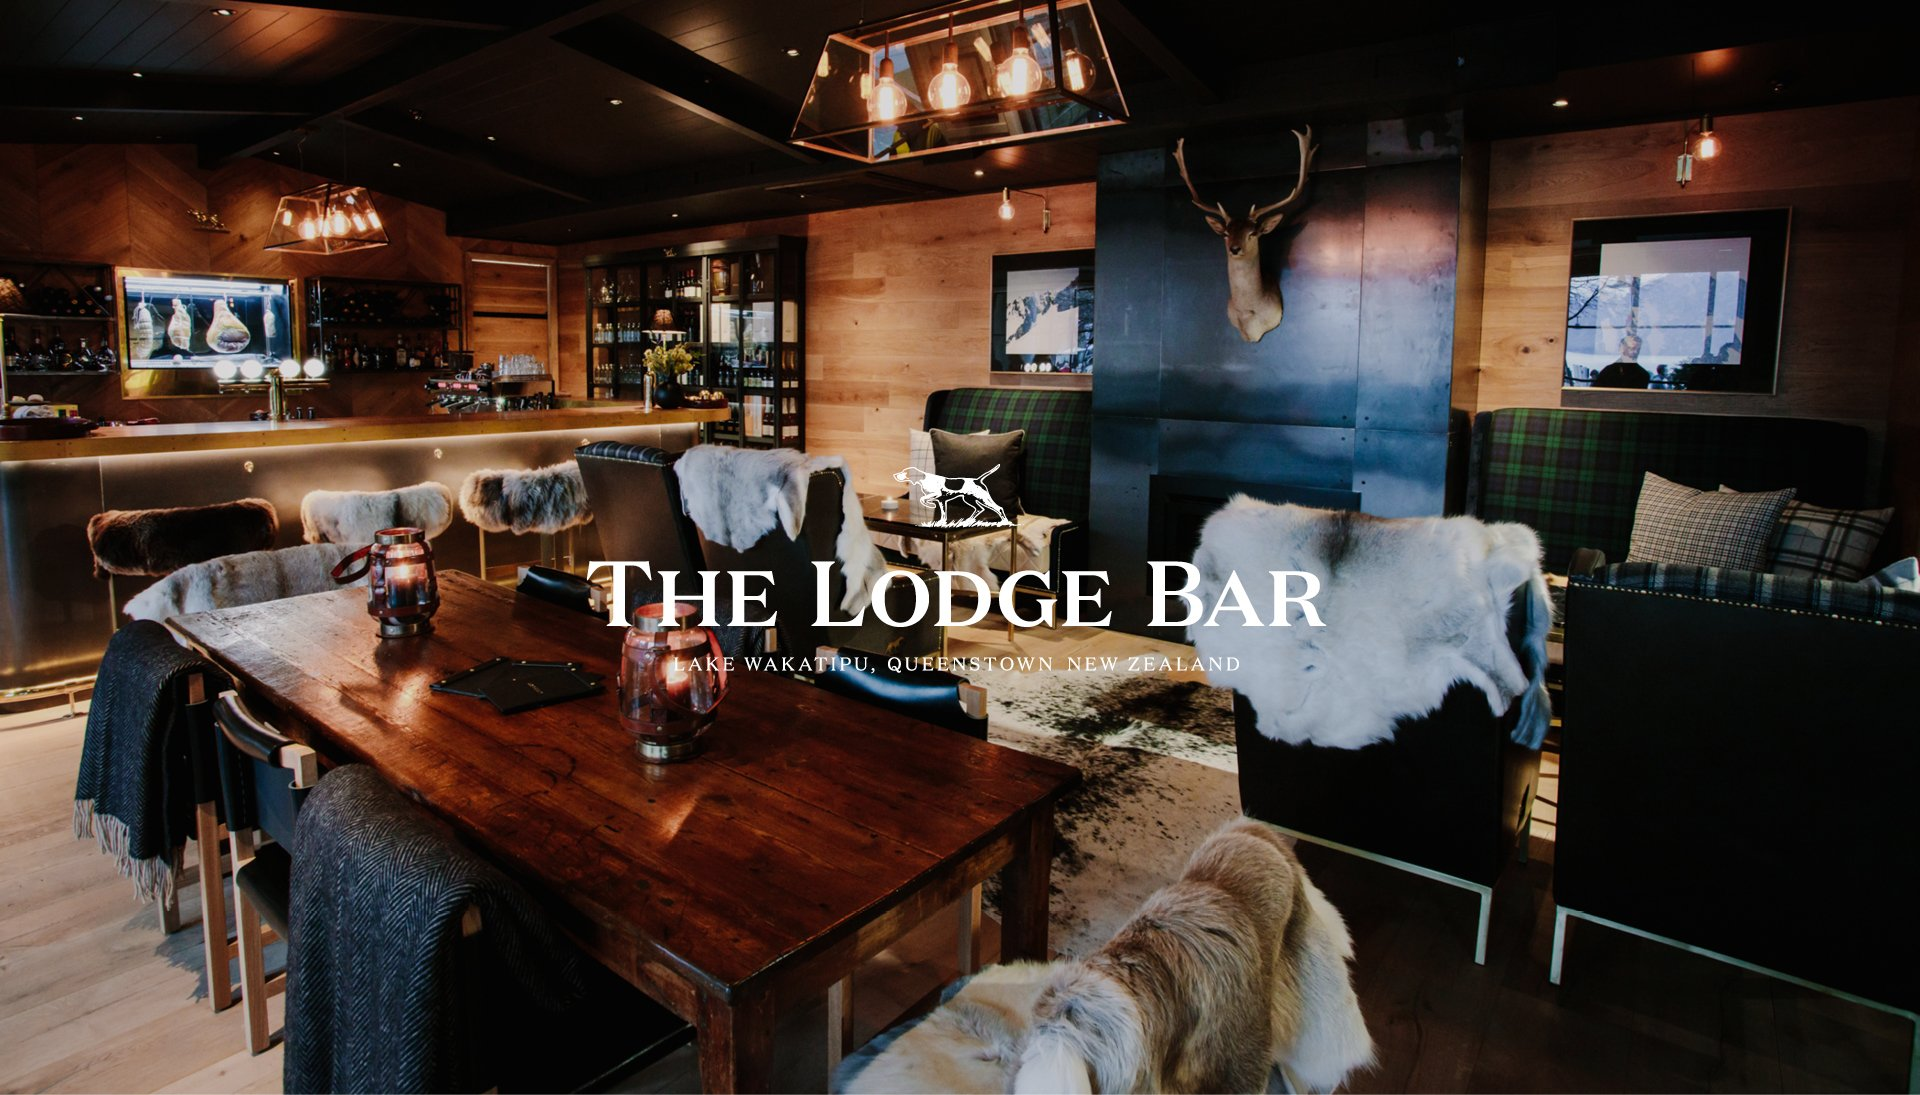 The Lodge Bar Lake Wakatipu